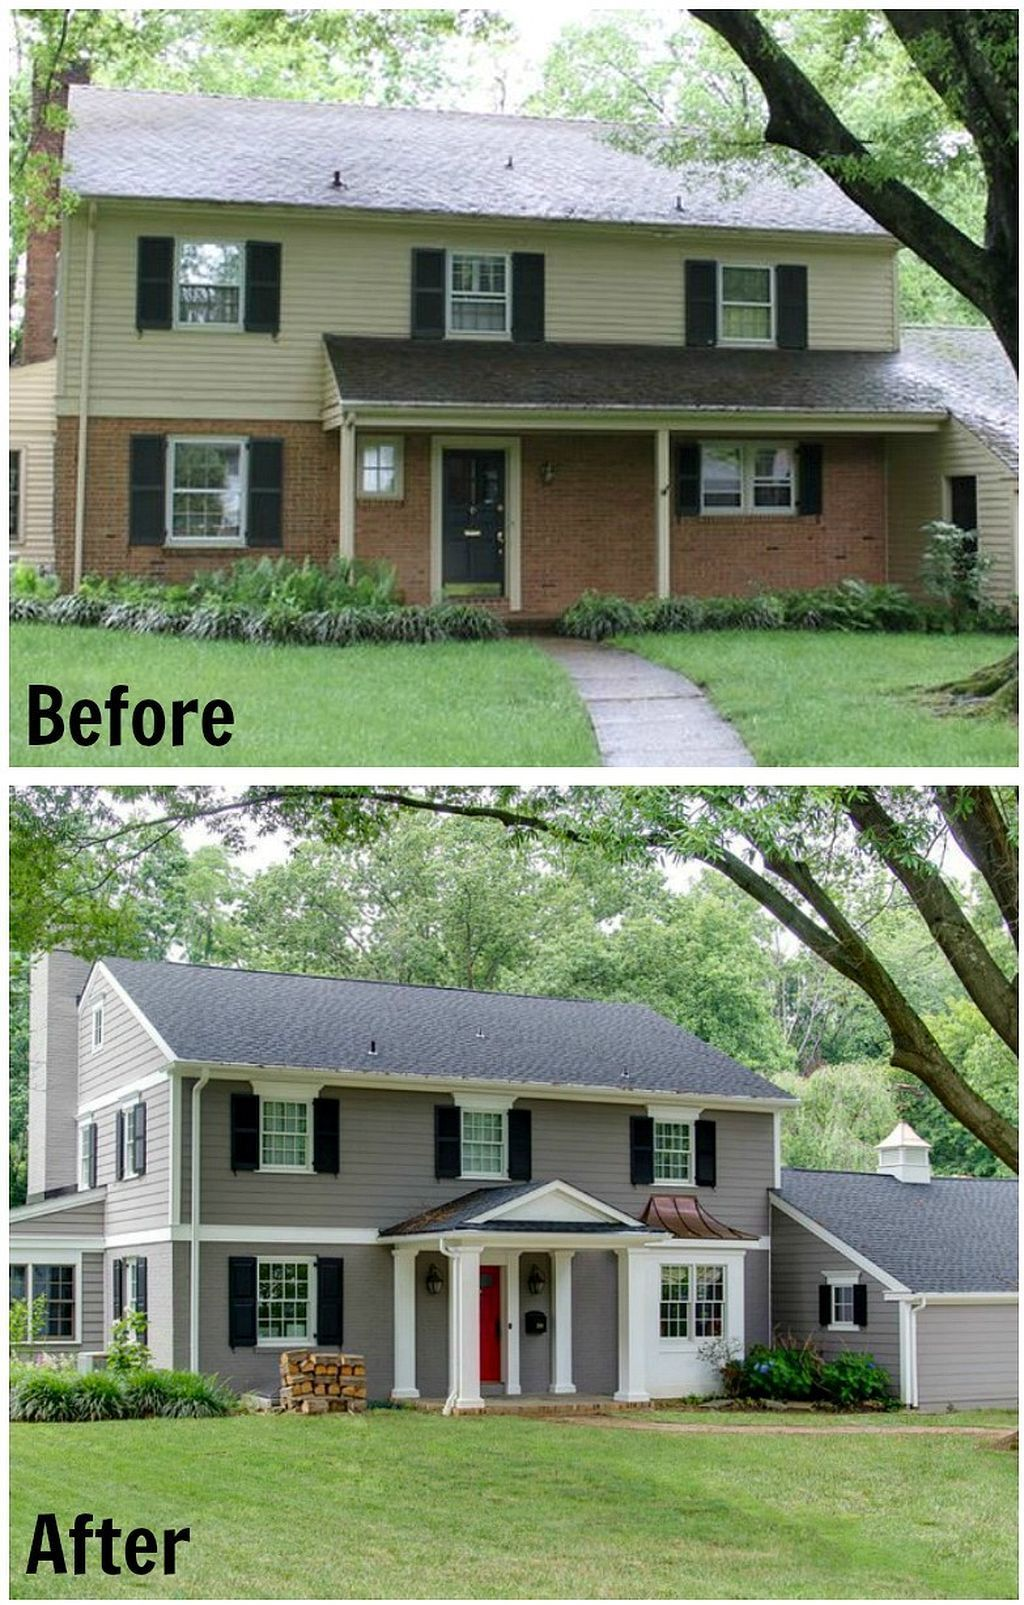 Pin by bendottie phillips on house flipping ideas in house